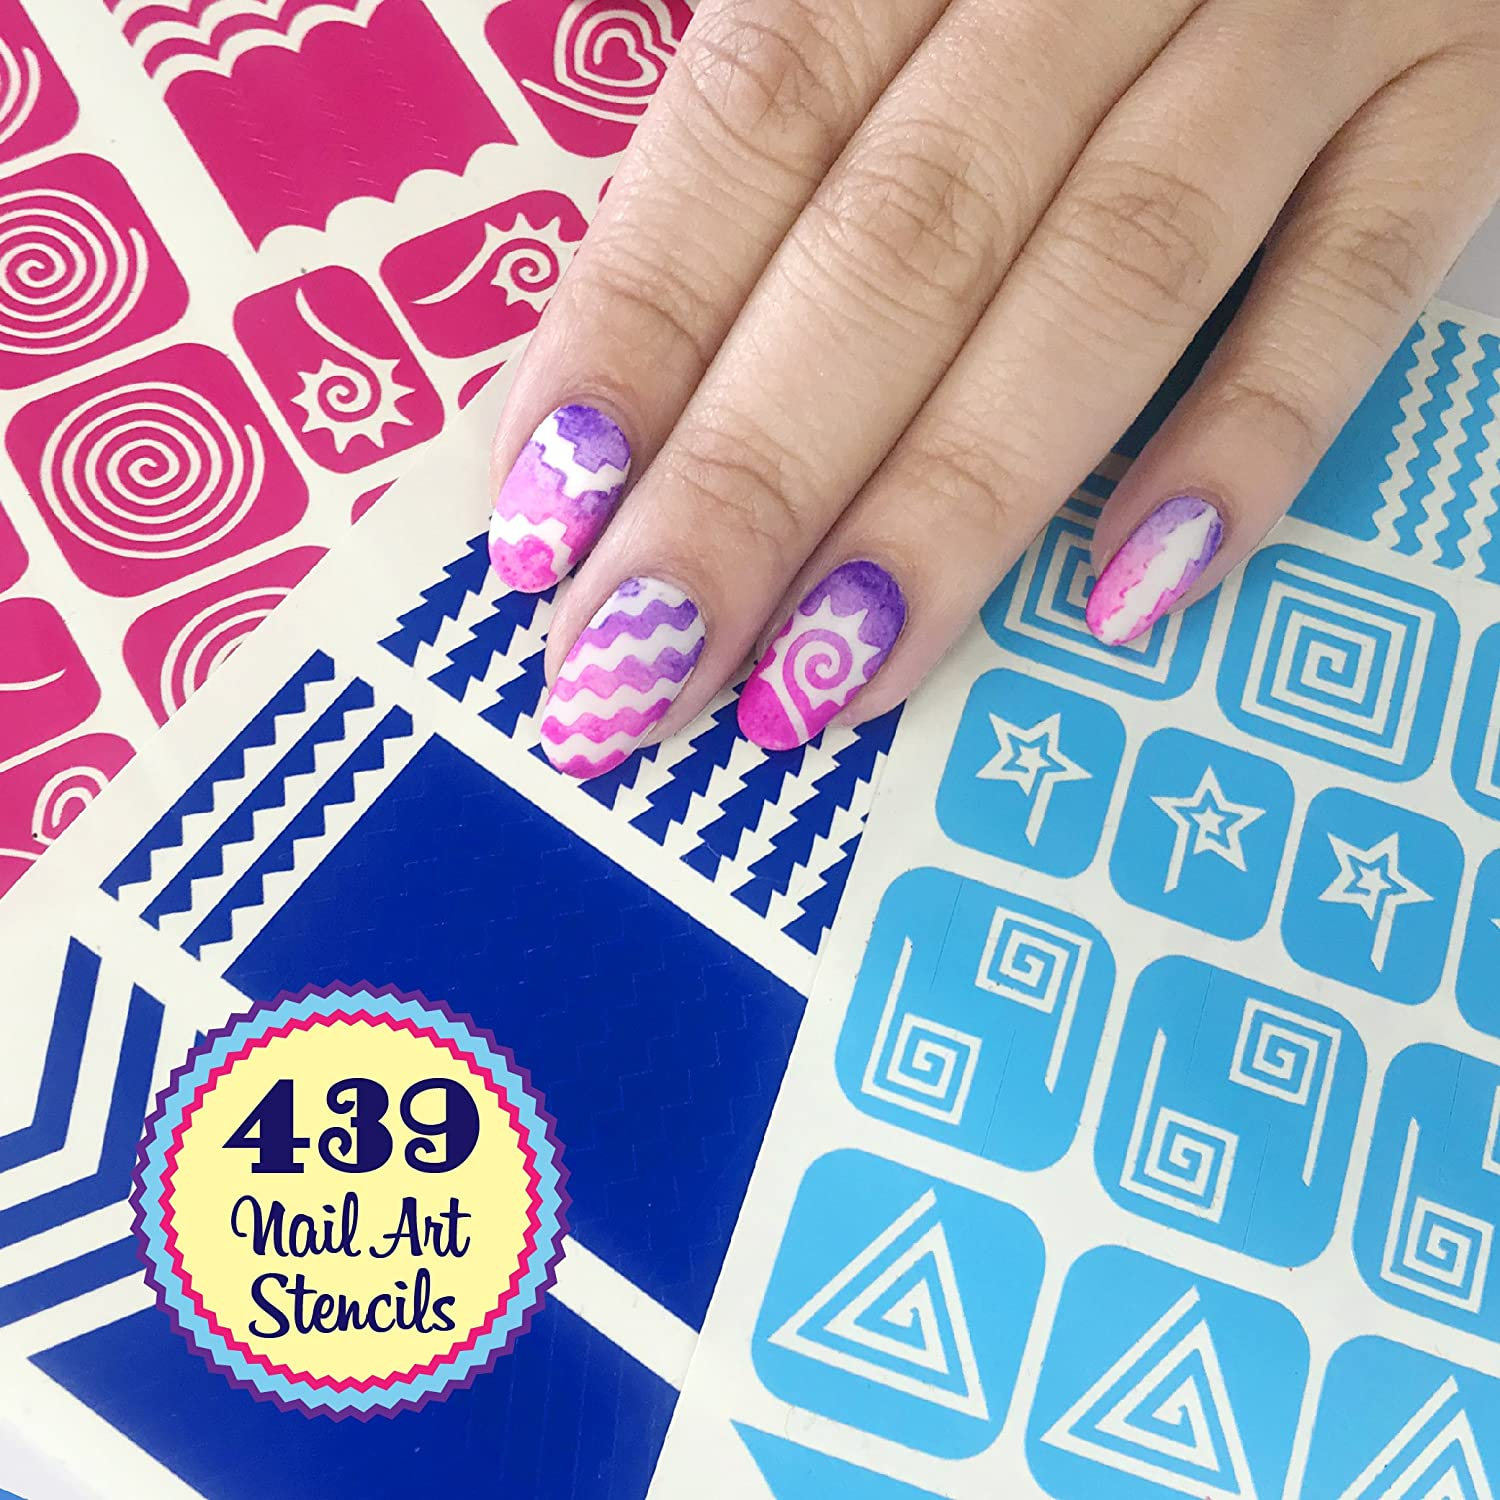 Nail Art Stencils Stickers Vinyl - 'Cyclone Collection' 439 Guides Kit - 21 Shapes: Chevron, Heart & More Adhesives Stripe Patterns Designs in 3 Sheets Supplies Tape Foil Decals Craft Gift H la Cosedora